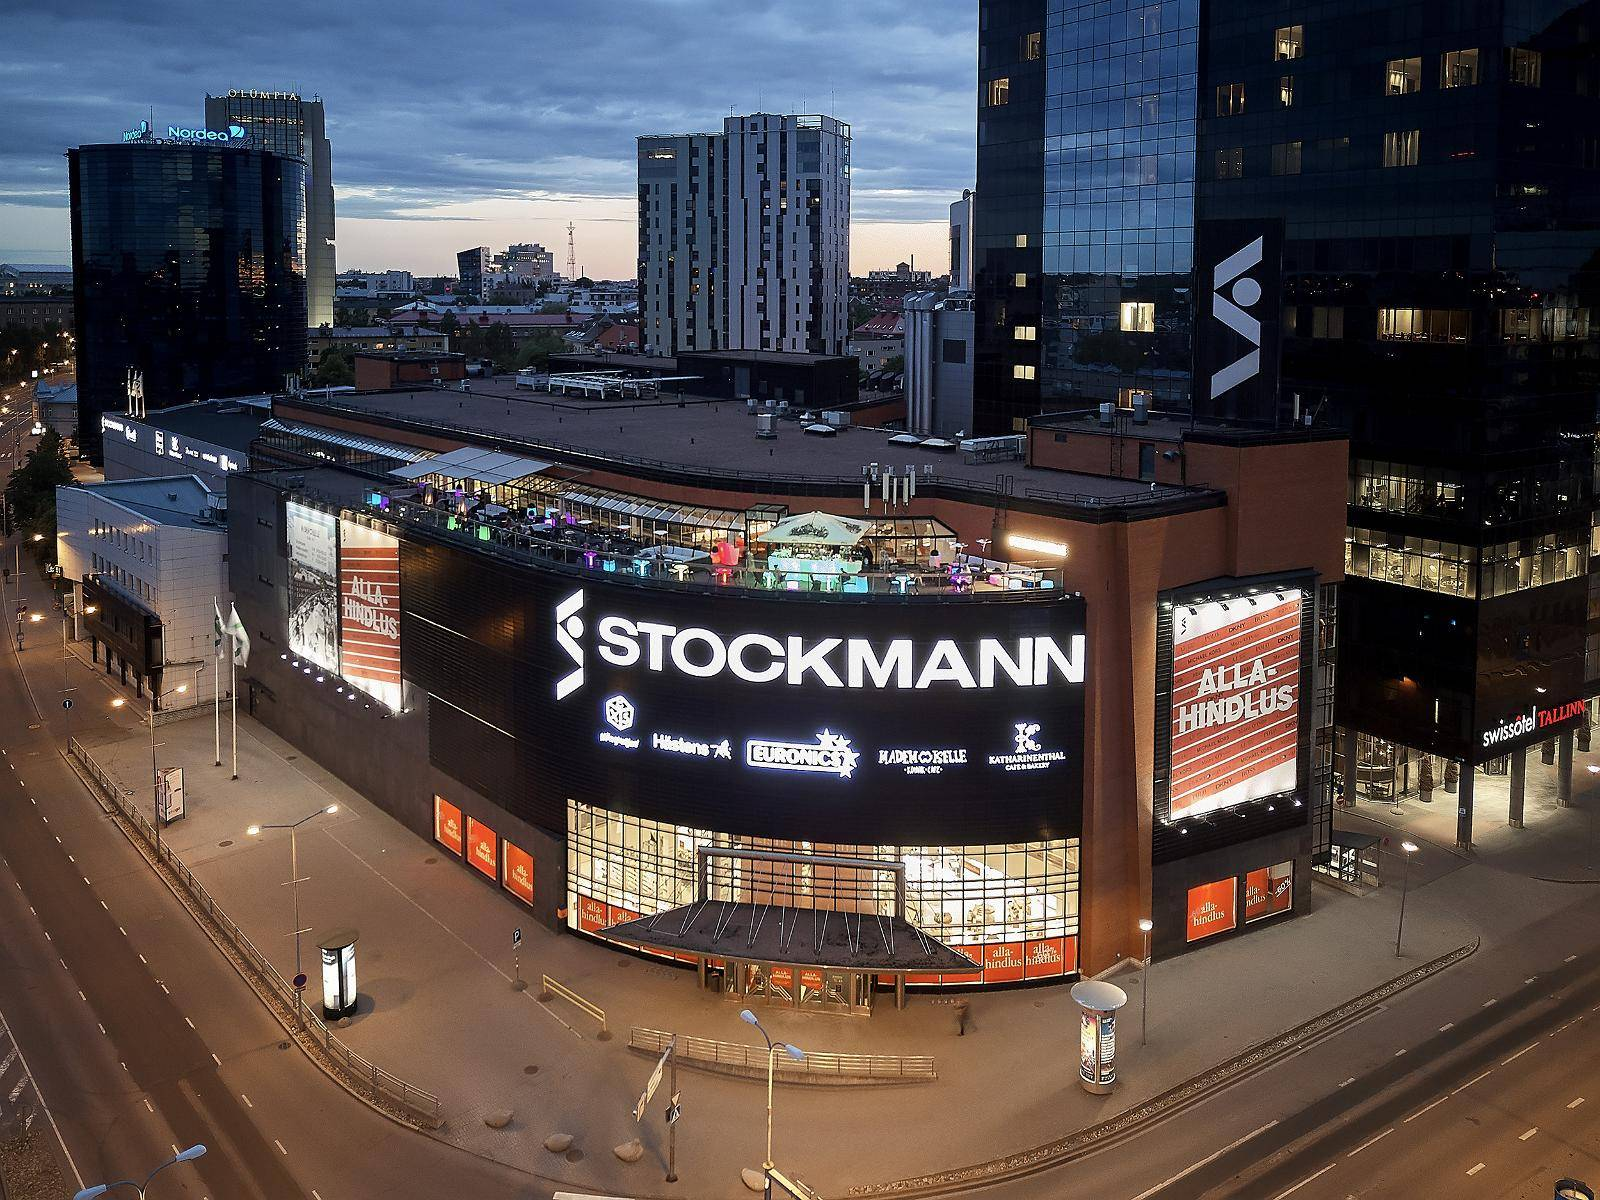 Stockmann in Tallinn,Estonia